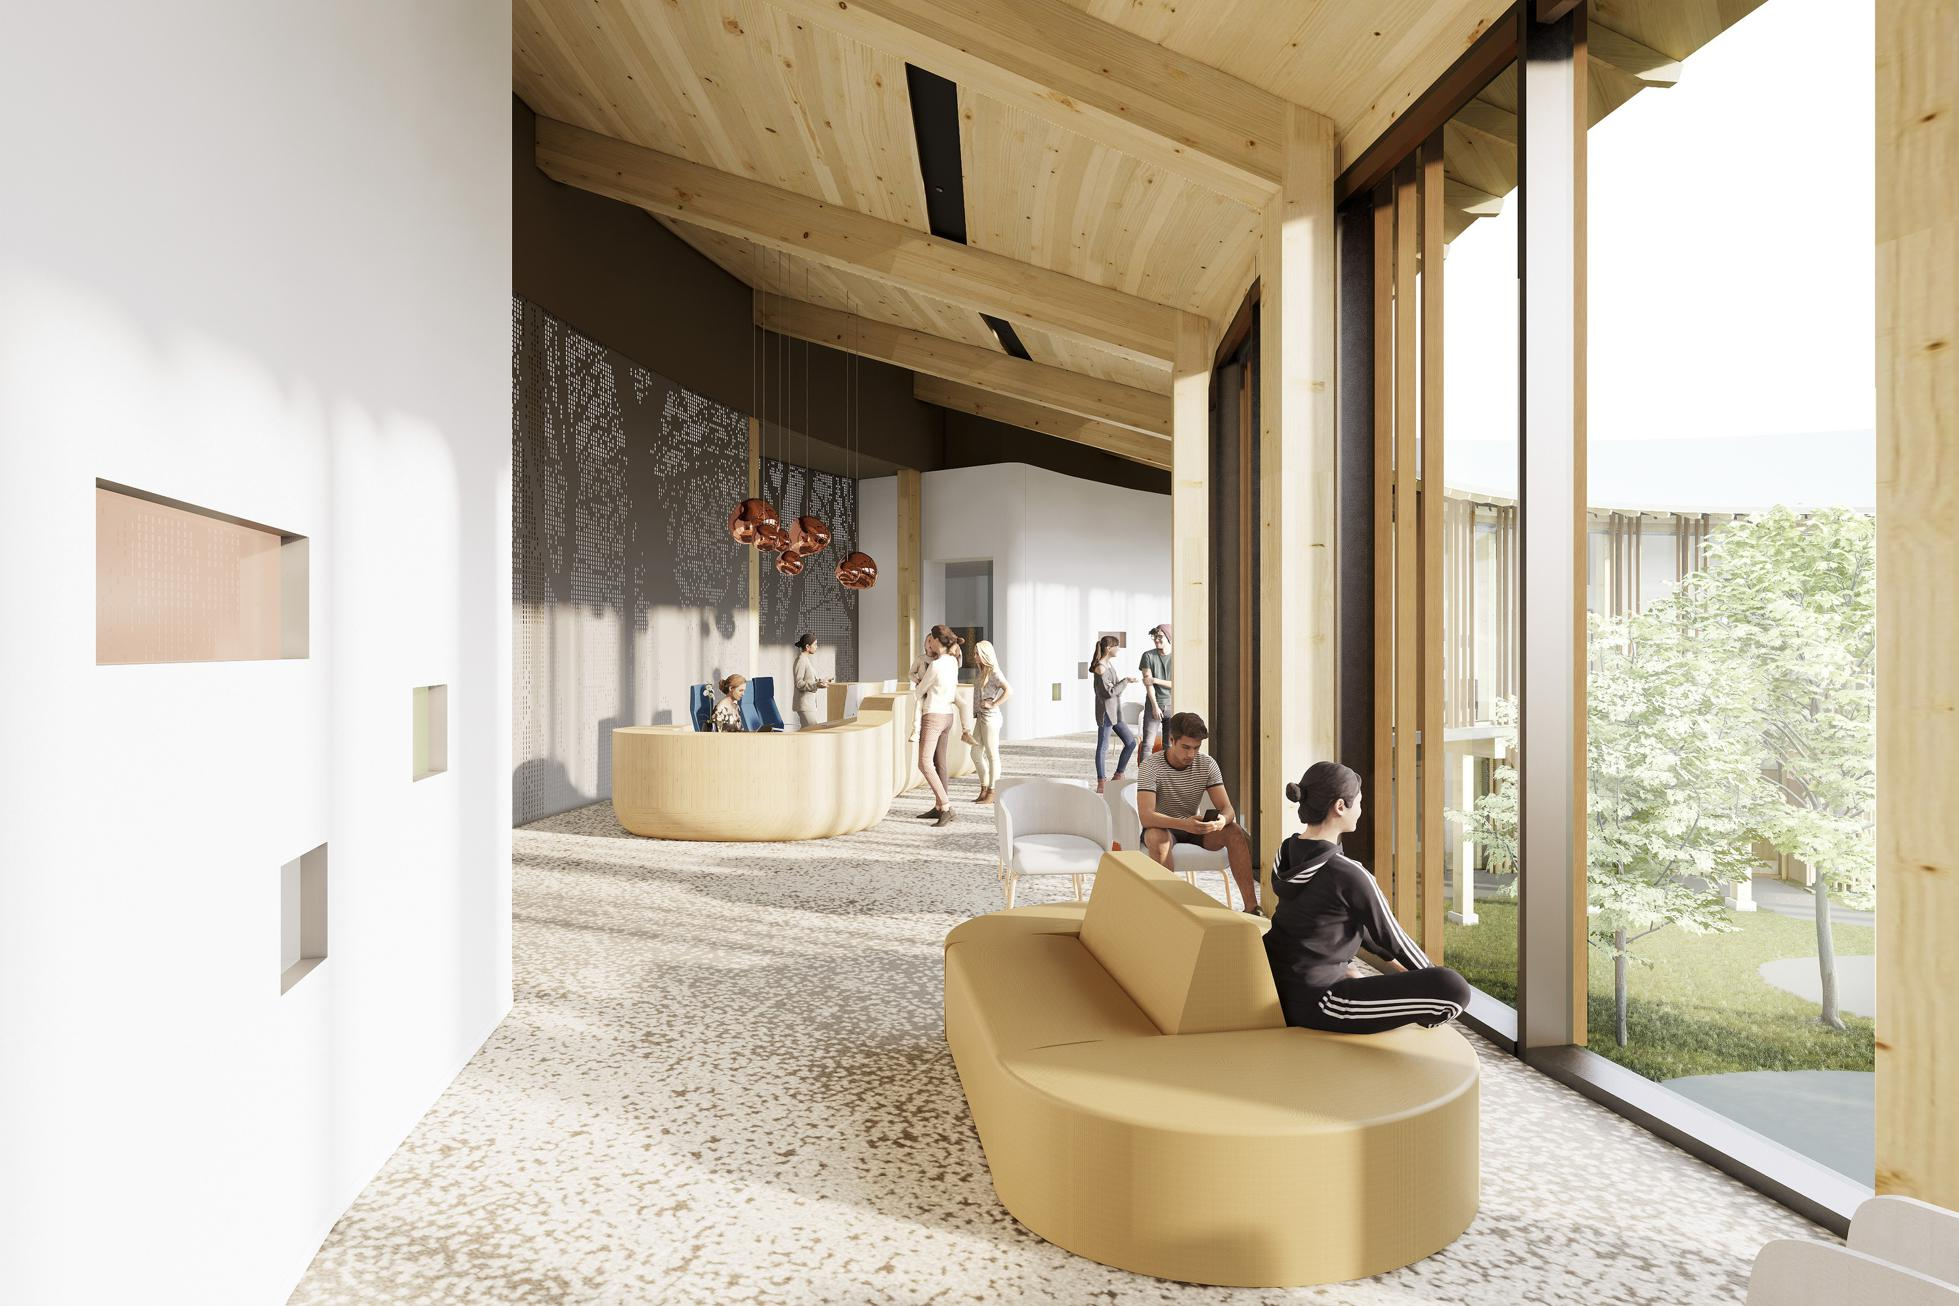 Design for the outpatient lobby at Ohana pediatric behavioral health center in Monterey, California.